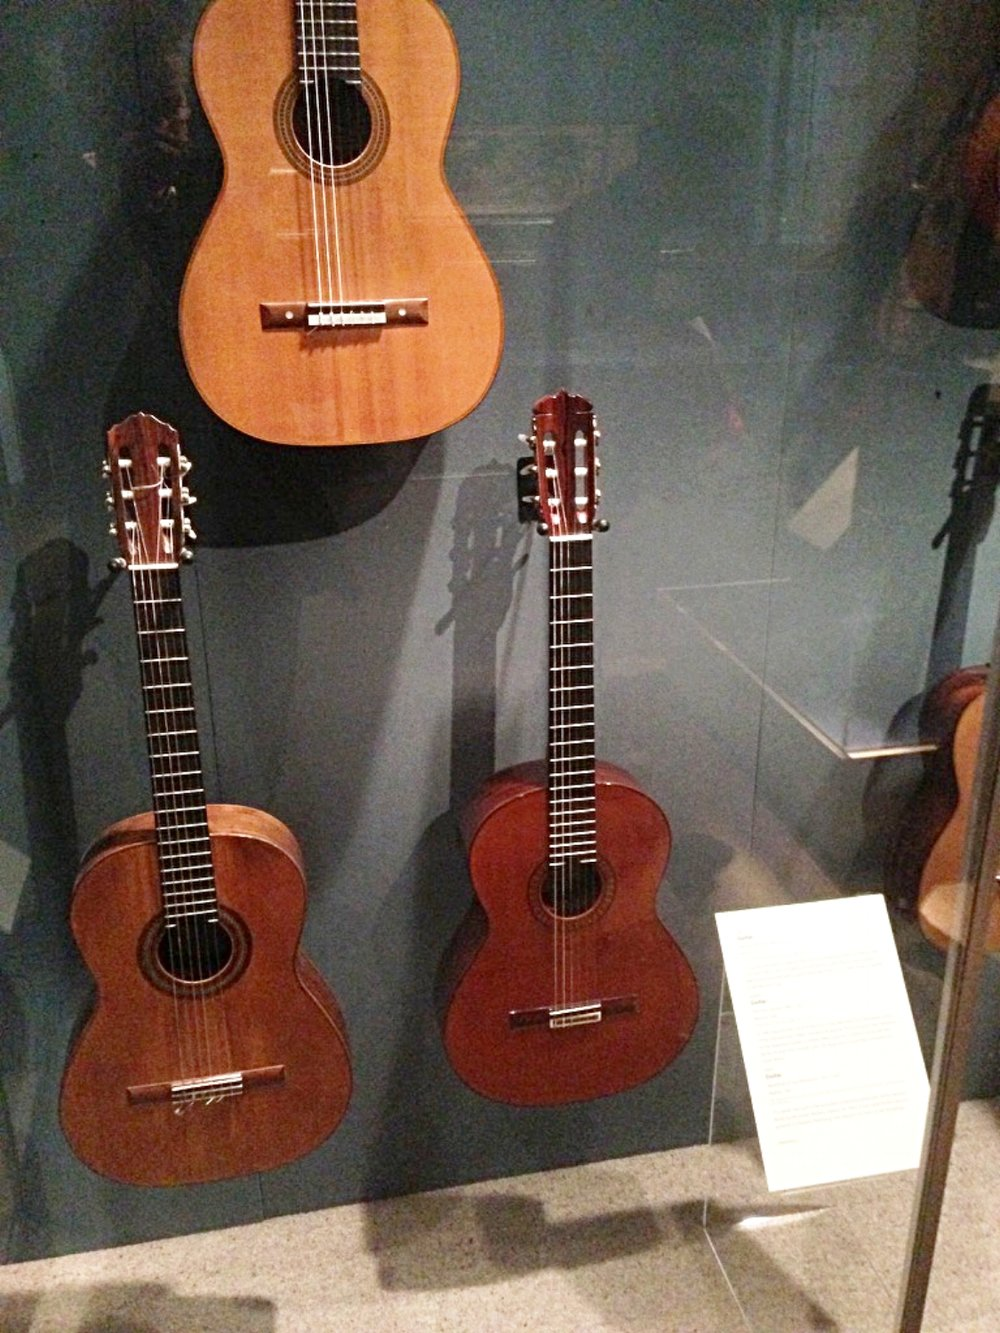 Guitar Display at Metropolitan Museum of Art, New York.